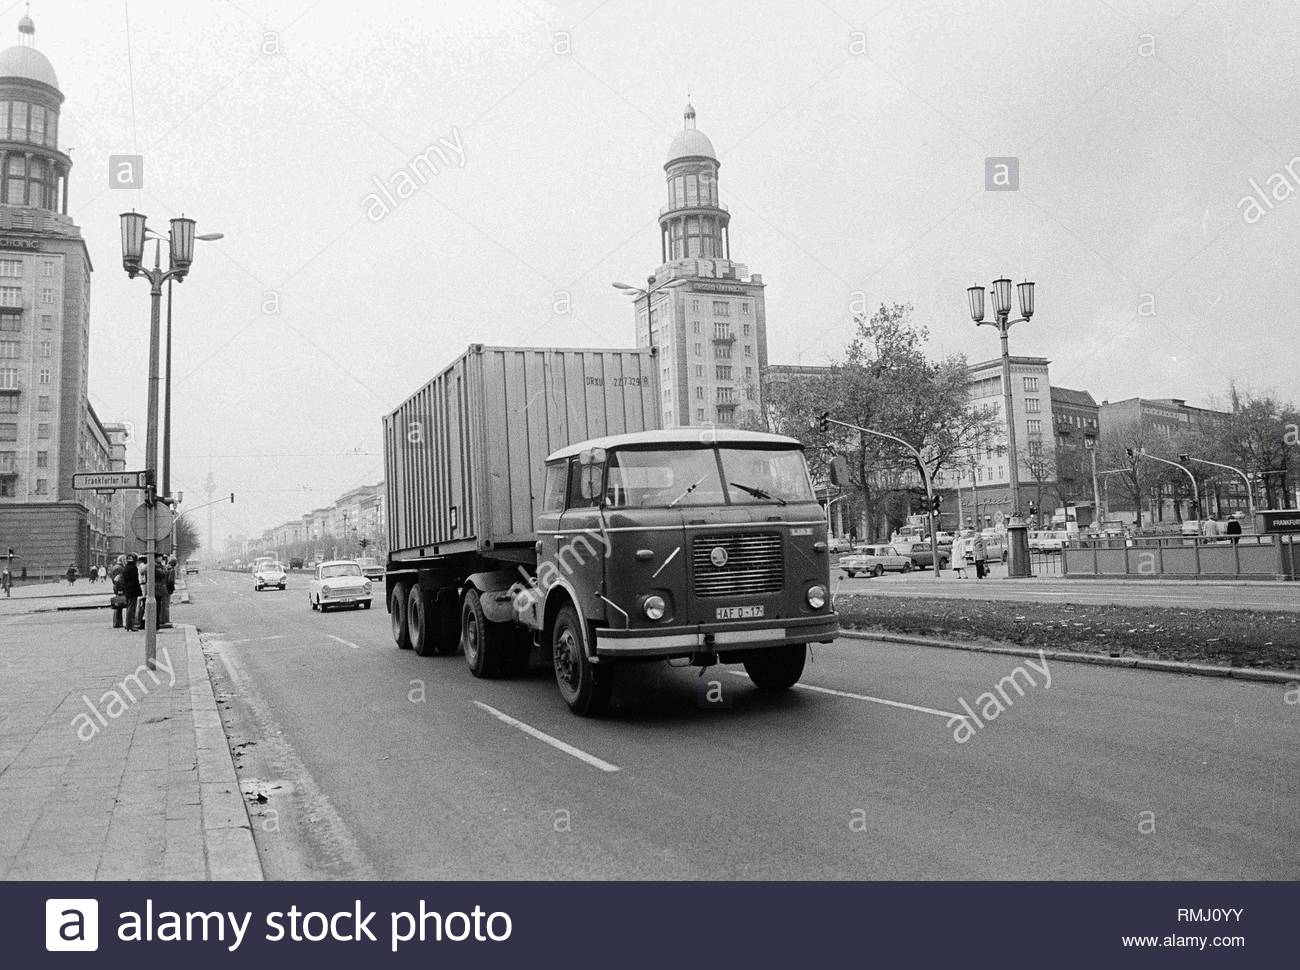 A truck of the tschechoslowakischen utility vehicle manufacturer LIAZ of the type Skoda 706 RT with an oversea container on the Frankfurt avenue in Berlin, the former capital of the GDR, German democratic republic. Foto: Heinz Schönfeld - Stock Image